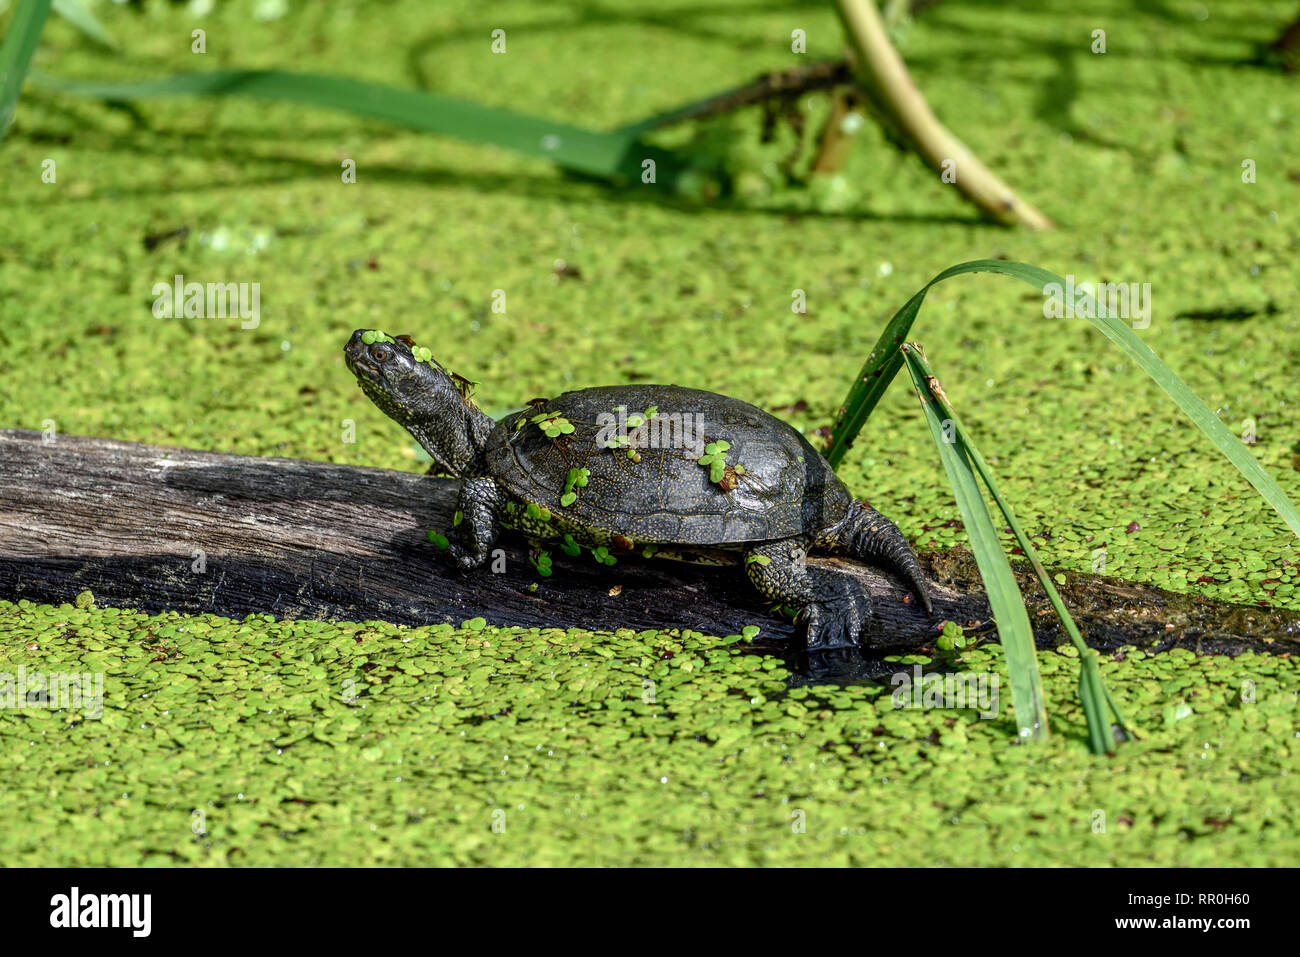 Zoologie/Tiere, Reptilien (Reptilia), Kontinent terrapin (Emys orbicularis), parc animalier de Sainte, Additional-Rights - Clearance-Info - Not-Available Stockbild